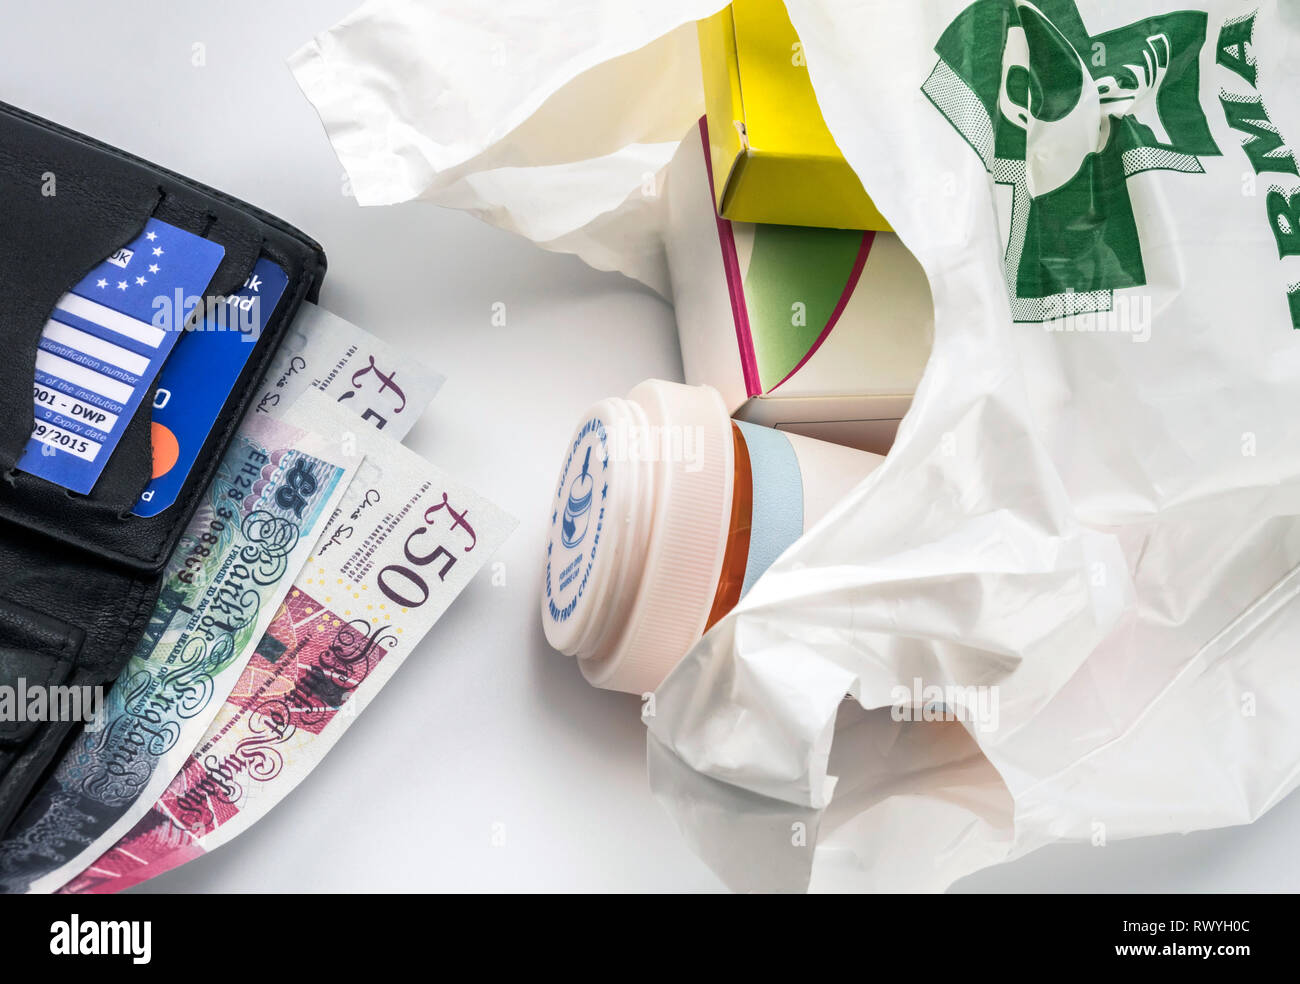 European health insurance card in a wallet along with several pounds sterling and medicines in a bag, concept of medical increase in the crisis of the - Stock Image